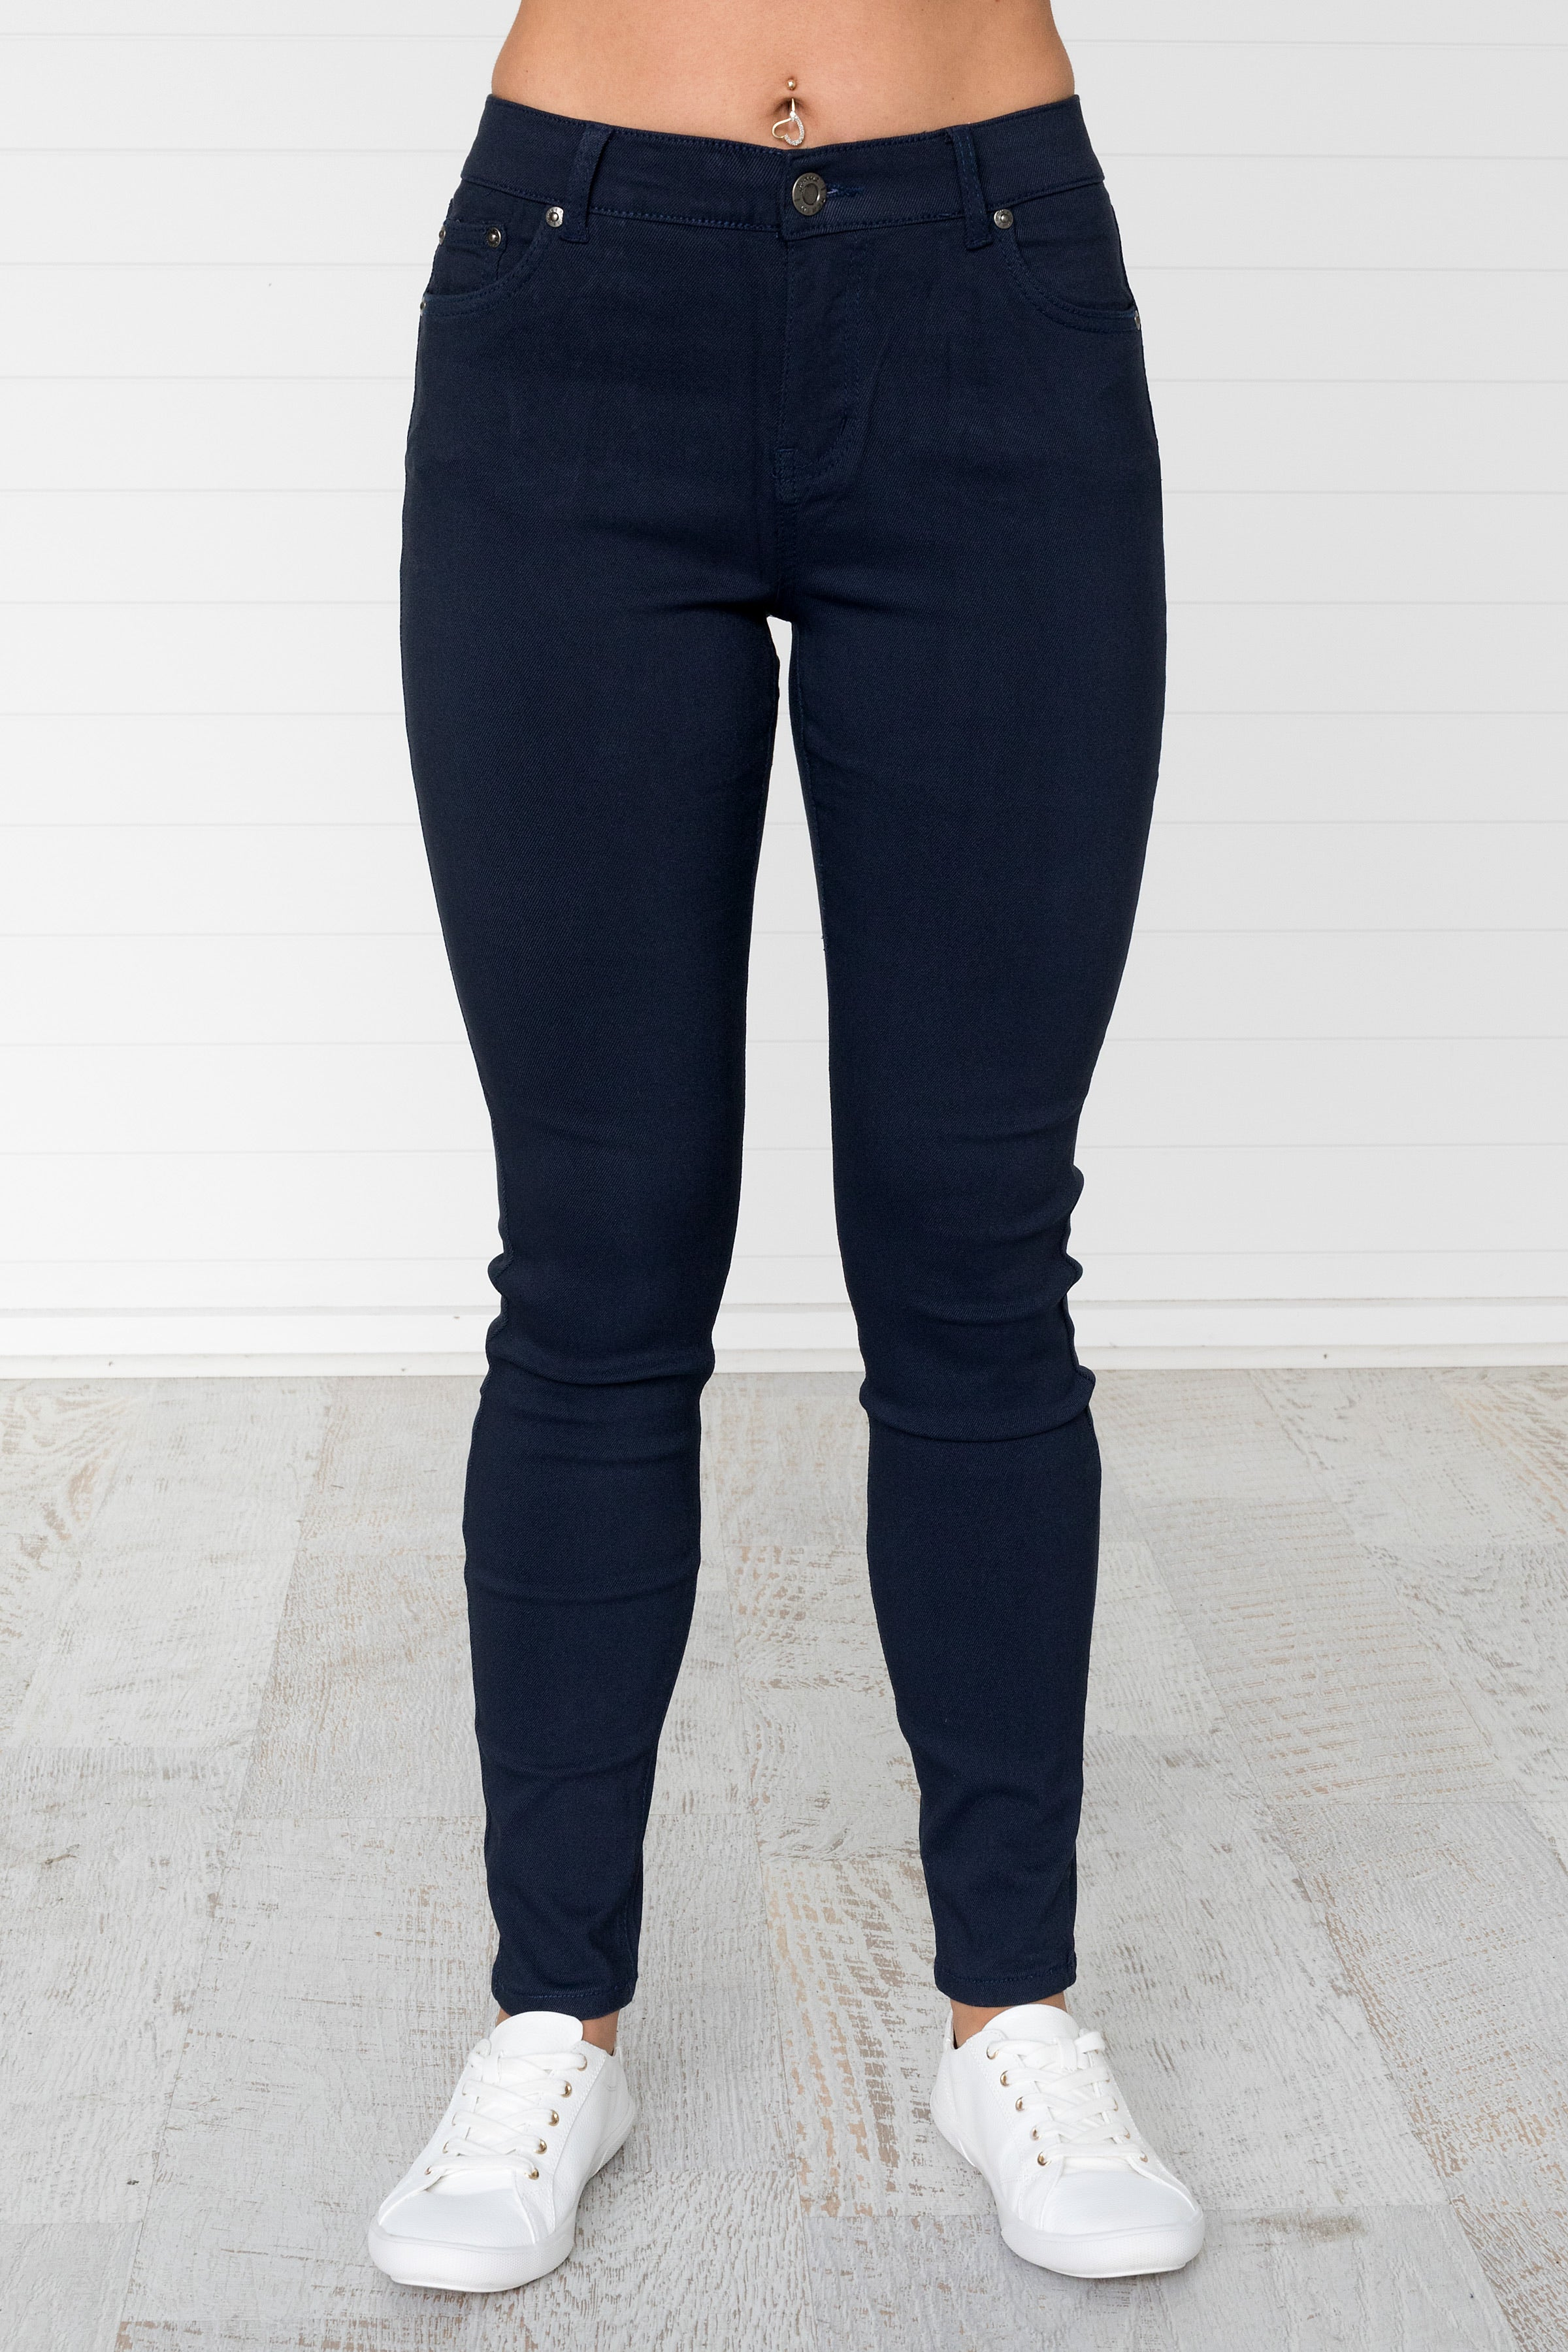 Alby Jeans - Navy